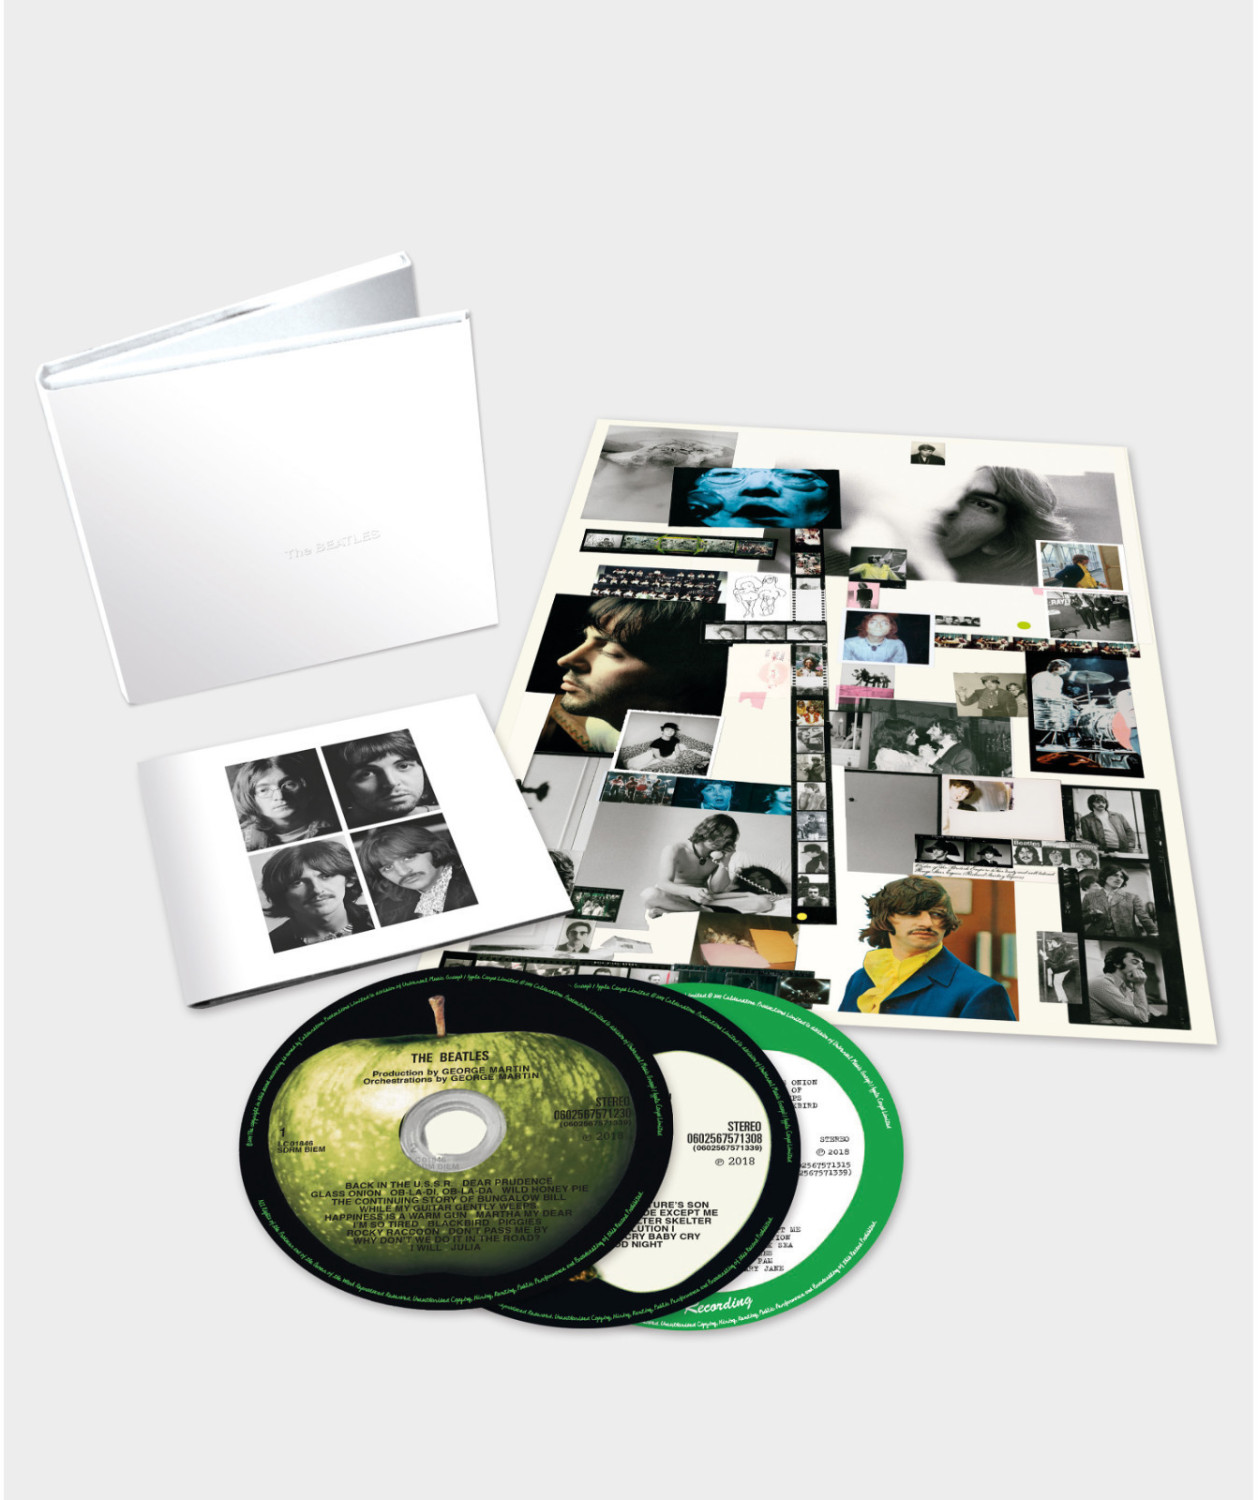 The Beatles - White Album (Limited Deluxe Edition) (CD)